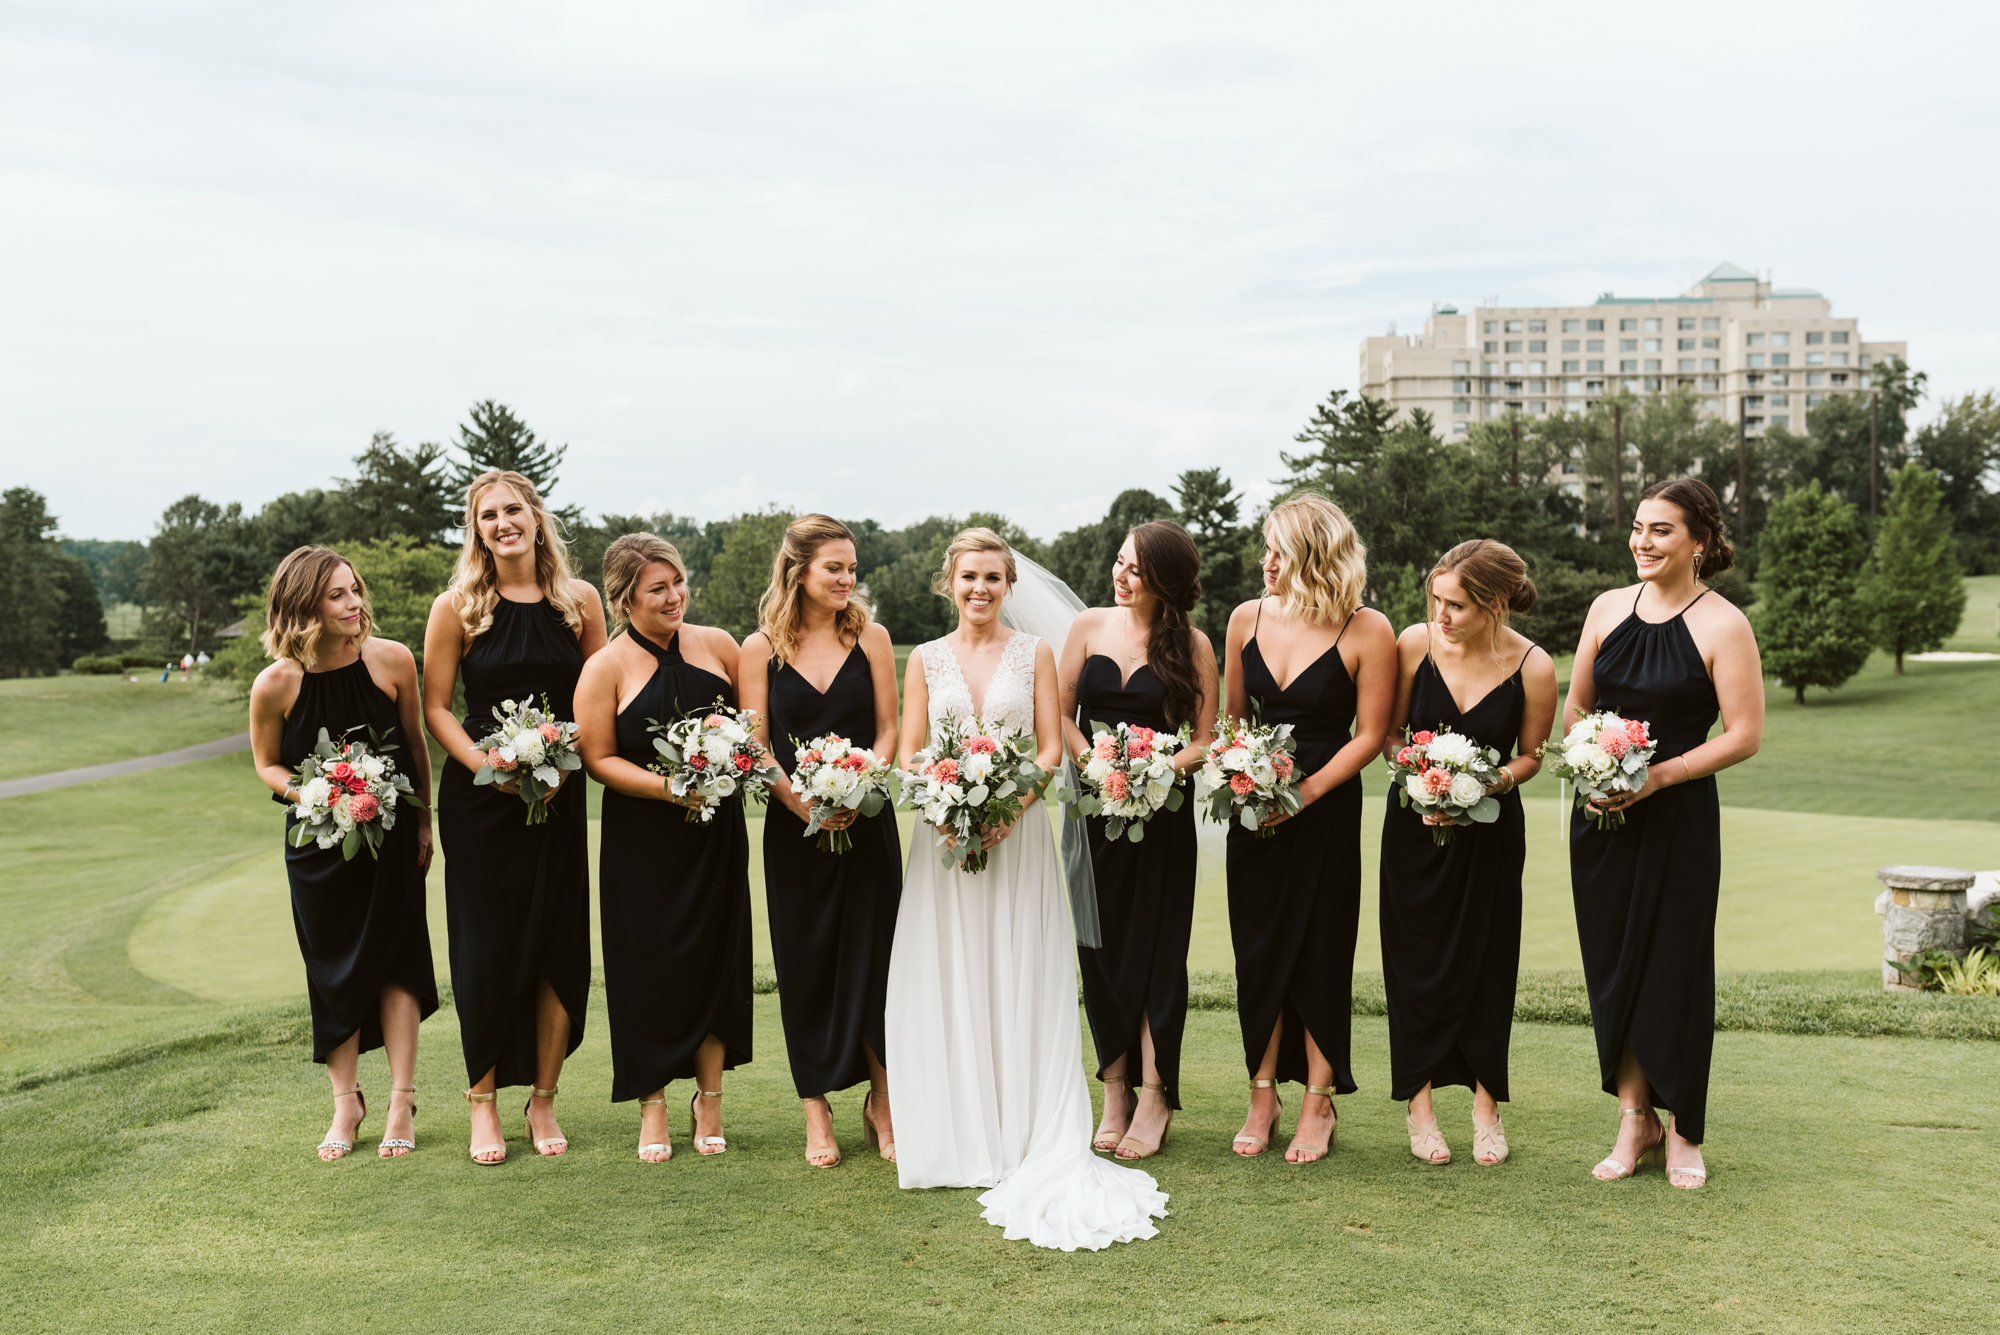 Elegant, Columbia Country Club, Chevy Chase Maryland, Baltimore Photographer, Classic, Bride with Bridesmaids, BHLDN Wedding Dress, Shona Joy Dresses, Meg Owen Floral Designs, Wes Anderson Style